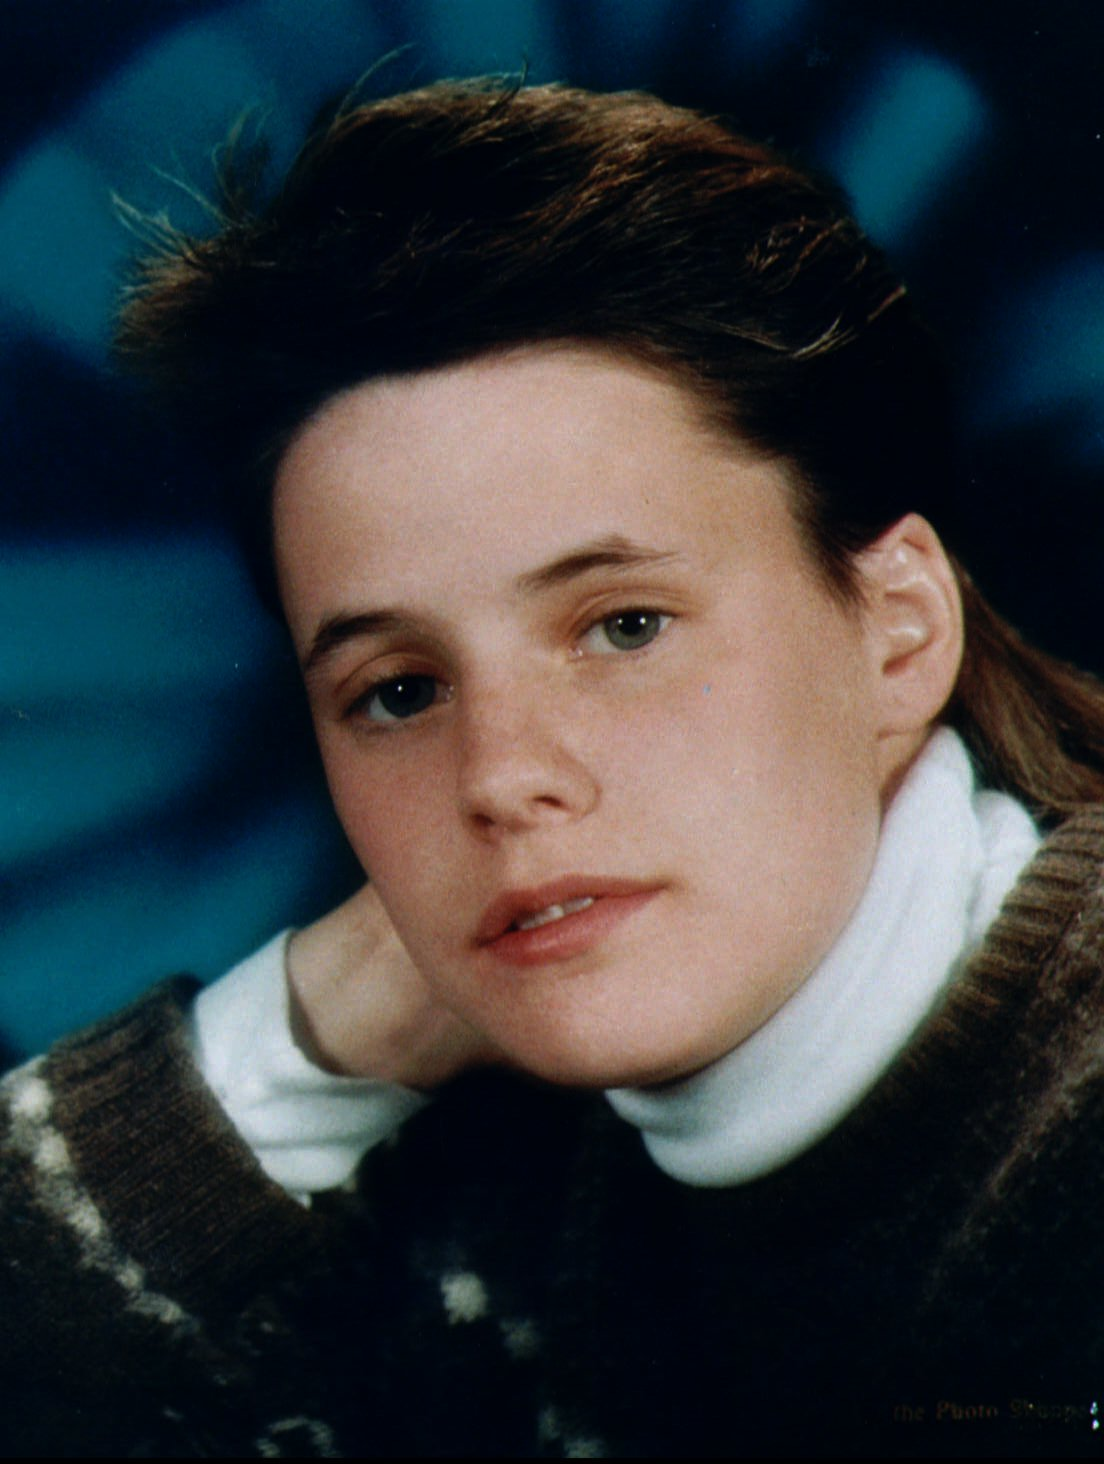 Brandon Teena was an American trans man who was raped and murdered in Nebraska in 1993. His murder was a catalyst for a lobbying effort for hate crimes legislation and his life and death were the subject of the film <i>Boys Don't Cry</i>.